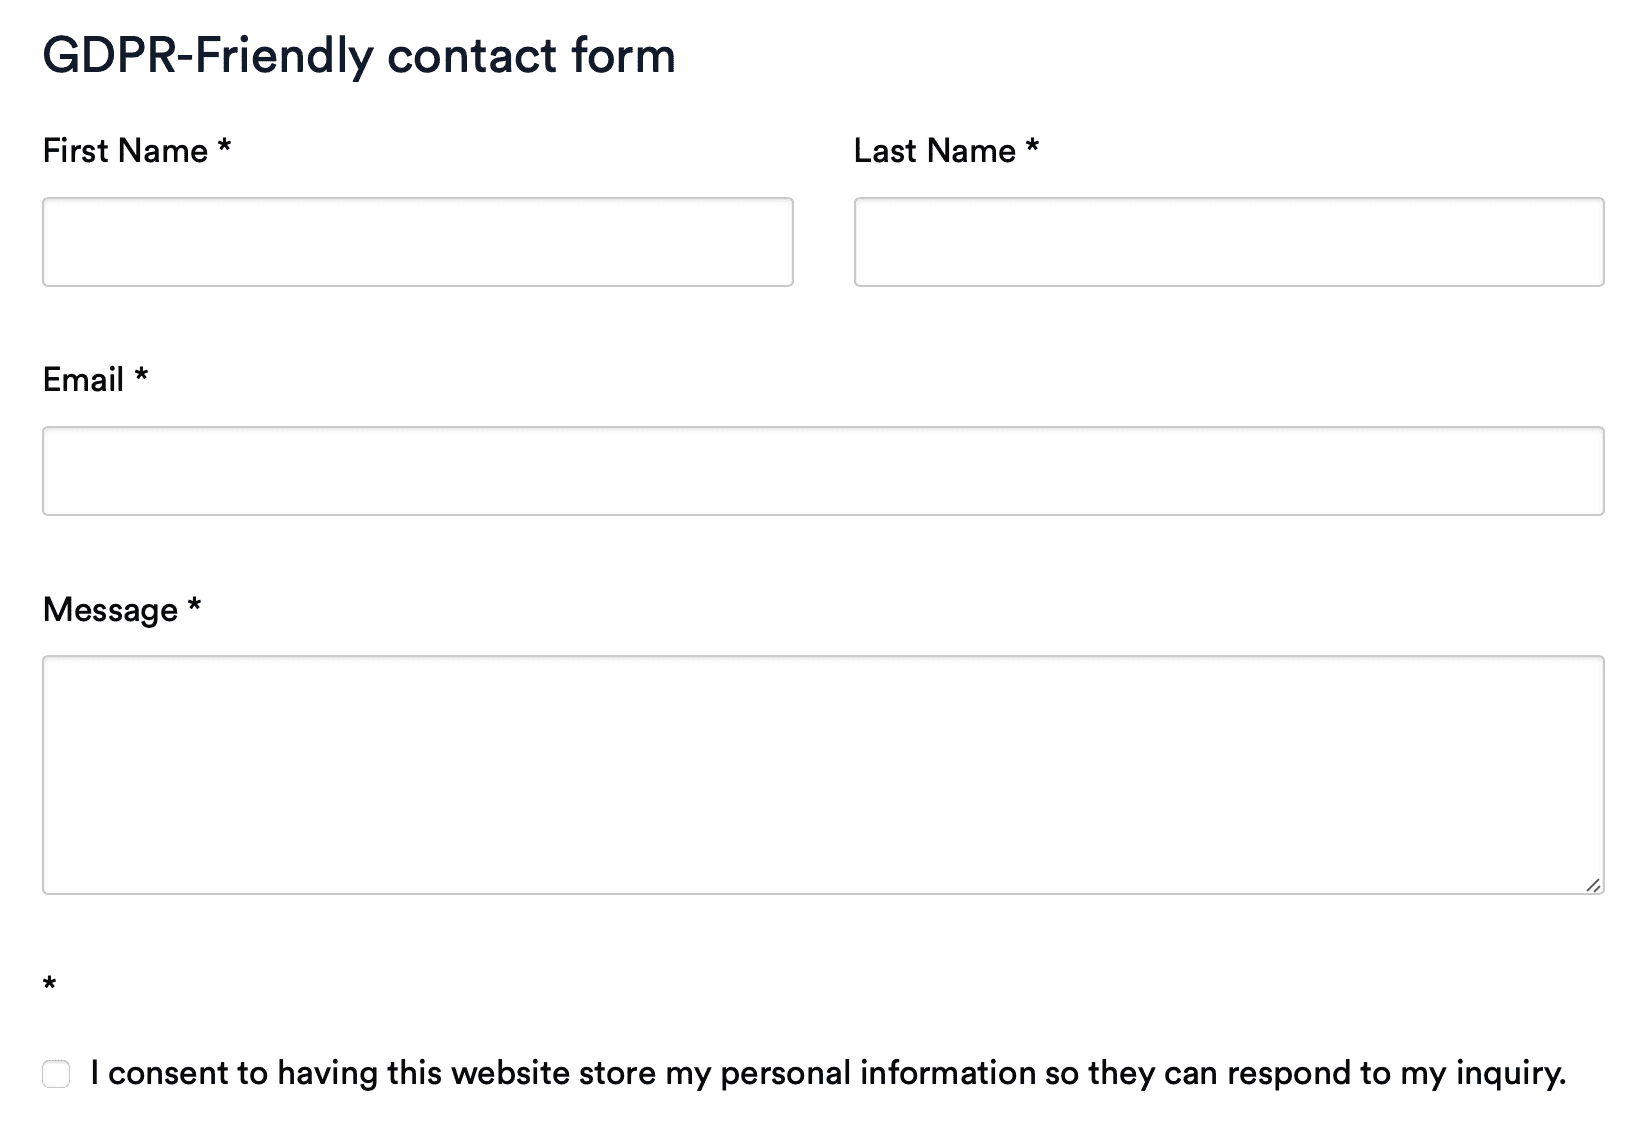 GDPR-friendly contact form